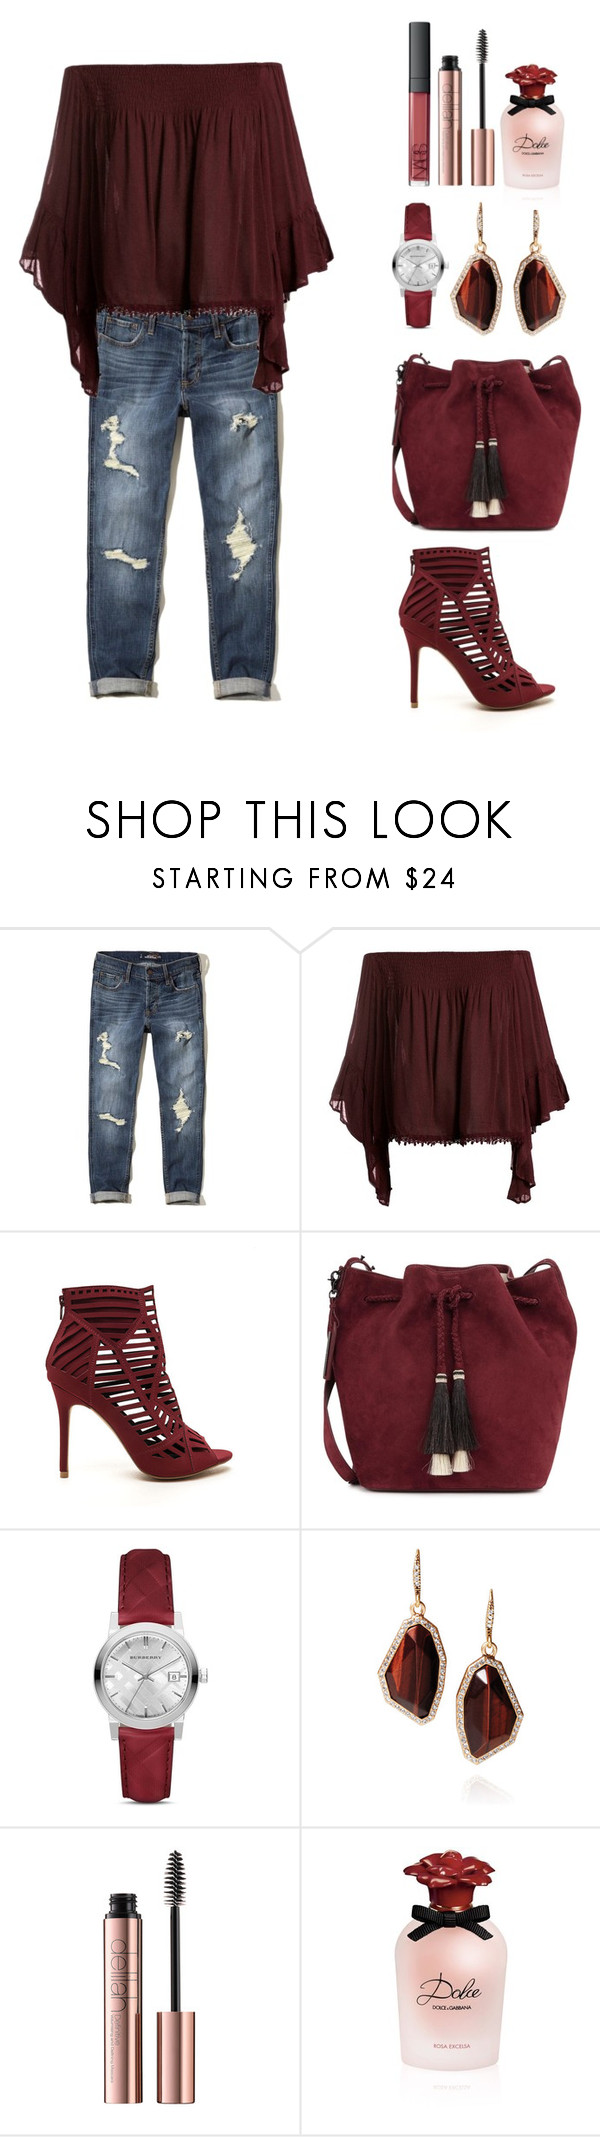 """Eye of the Tiger"" by itsmeambra ❤ liked on Polyvore featuring Hollister Co., Sans Souci, Loeffler Randall, Burberry, Chloe + Isabel and Dolce&Gabbana"